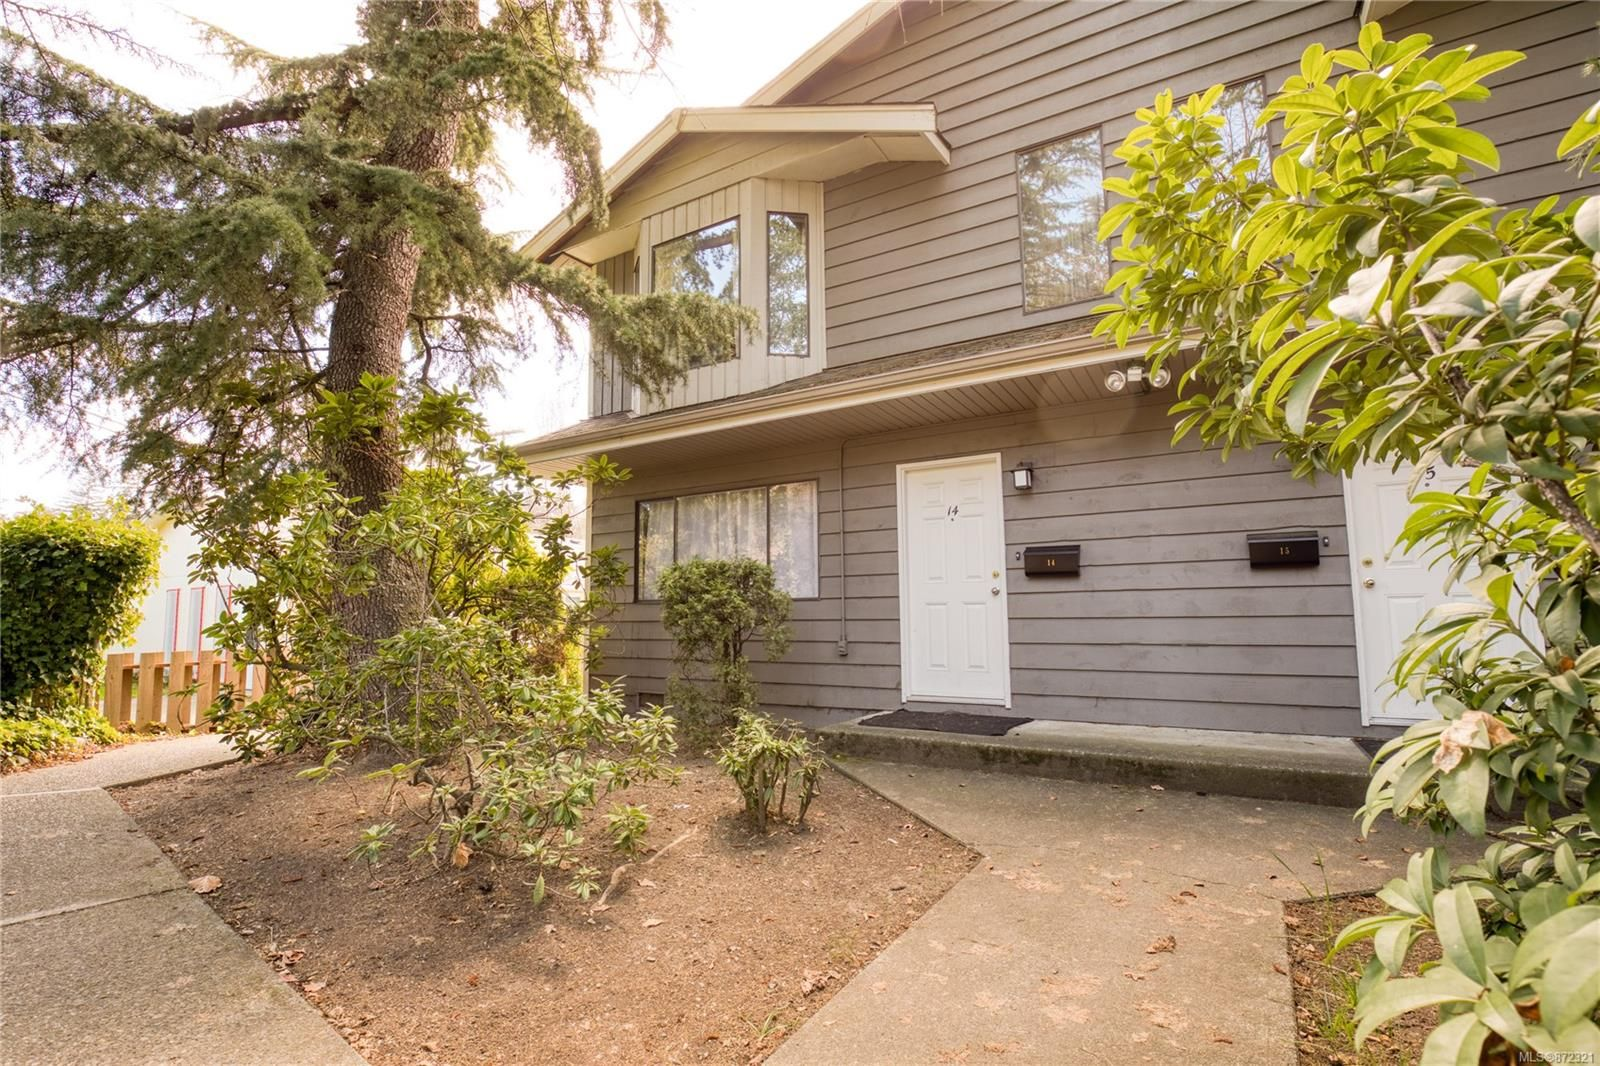 Main Photo: 14 211 Buttertubs Pl in : Na Central Nanaimo Row/Townhouse for sale (Nanaimo)  : MLS®# 872321